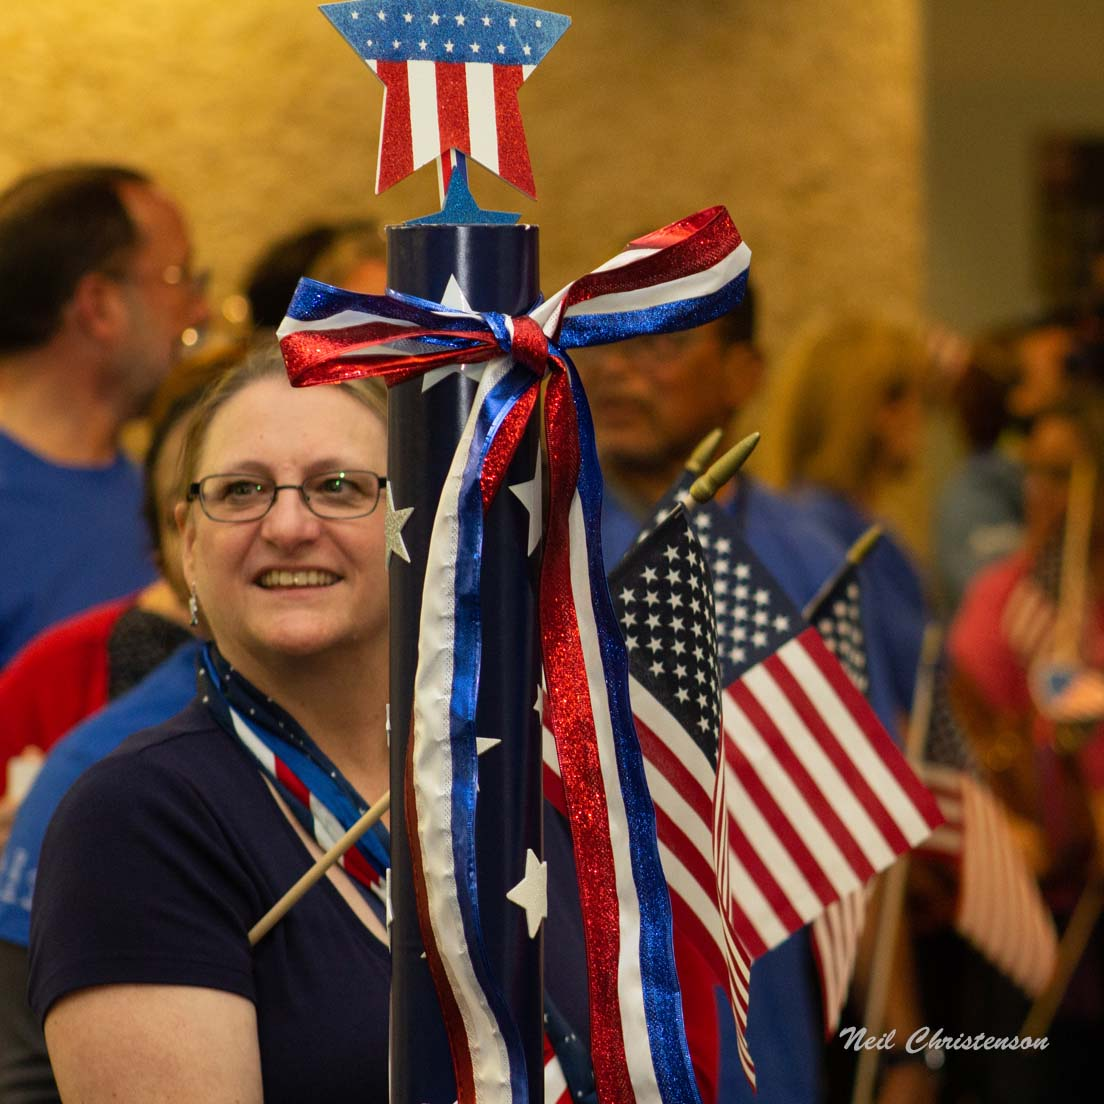 A woman standing by a patriotically-decorated stanton with a crowd behind her.